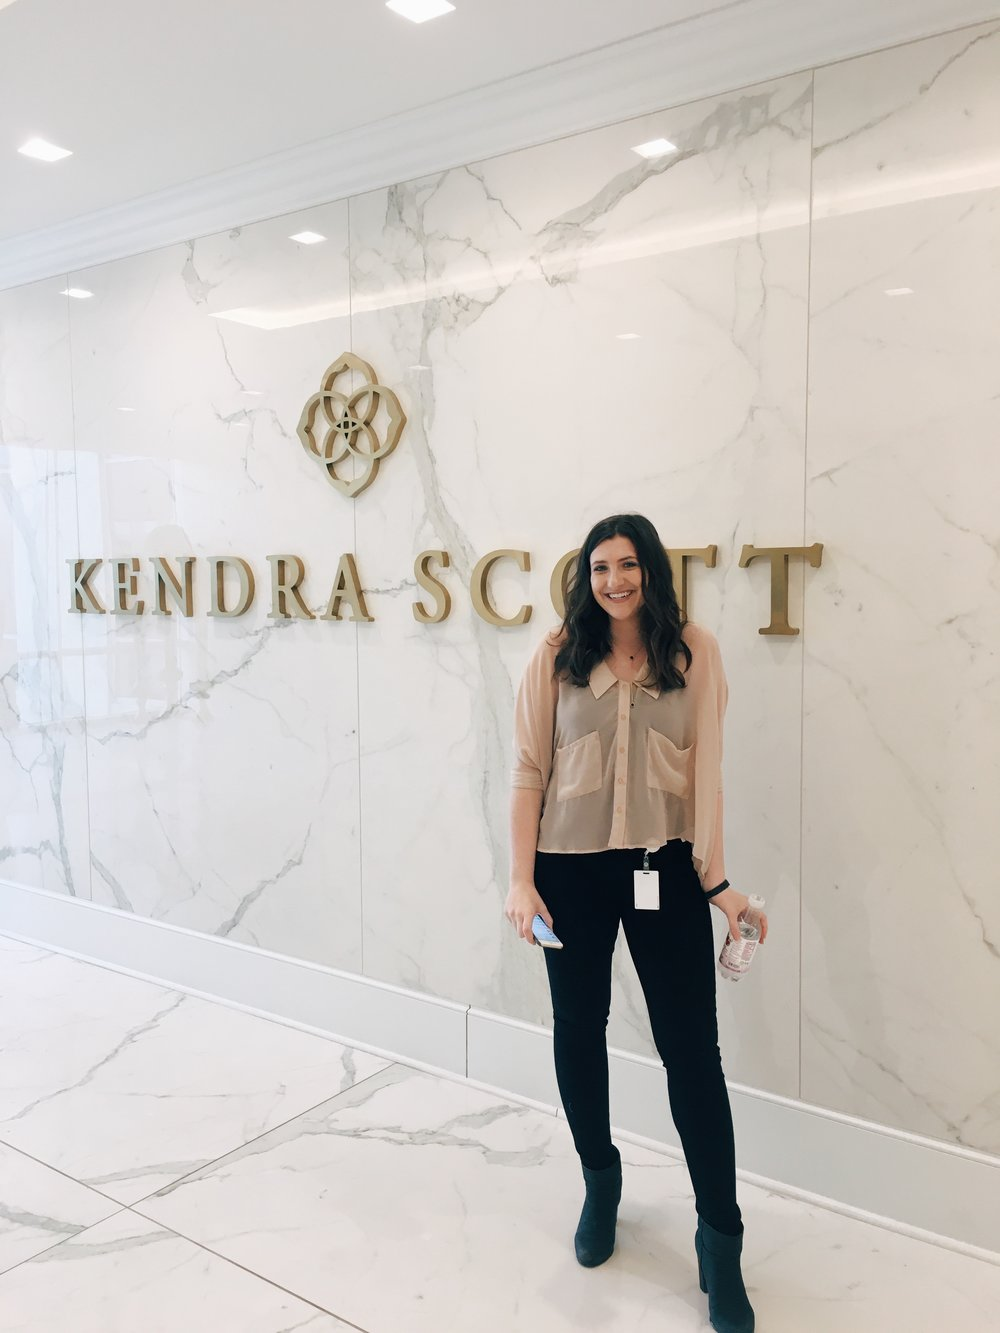 kendra-scott-corporate-office.JPG